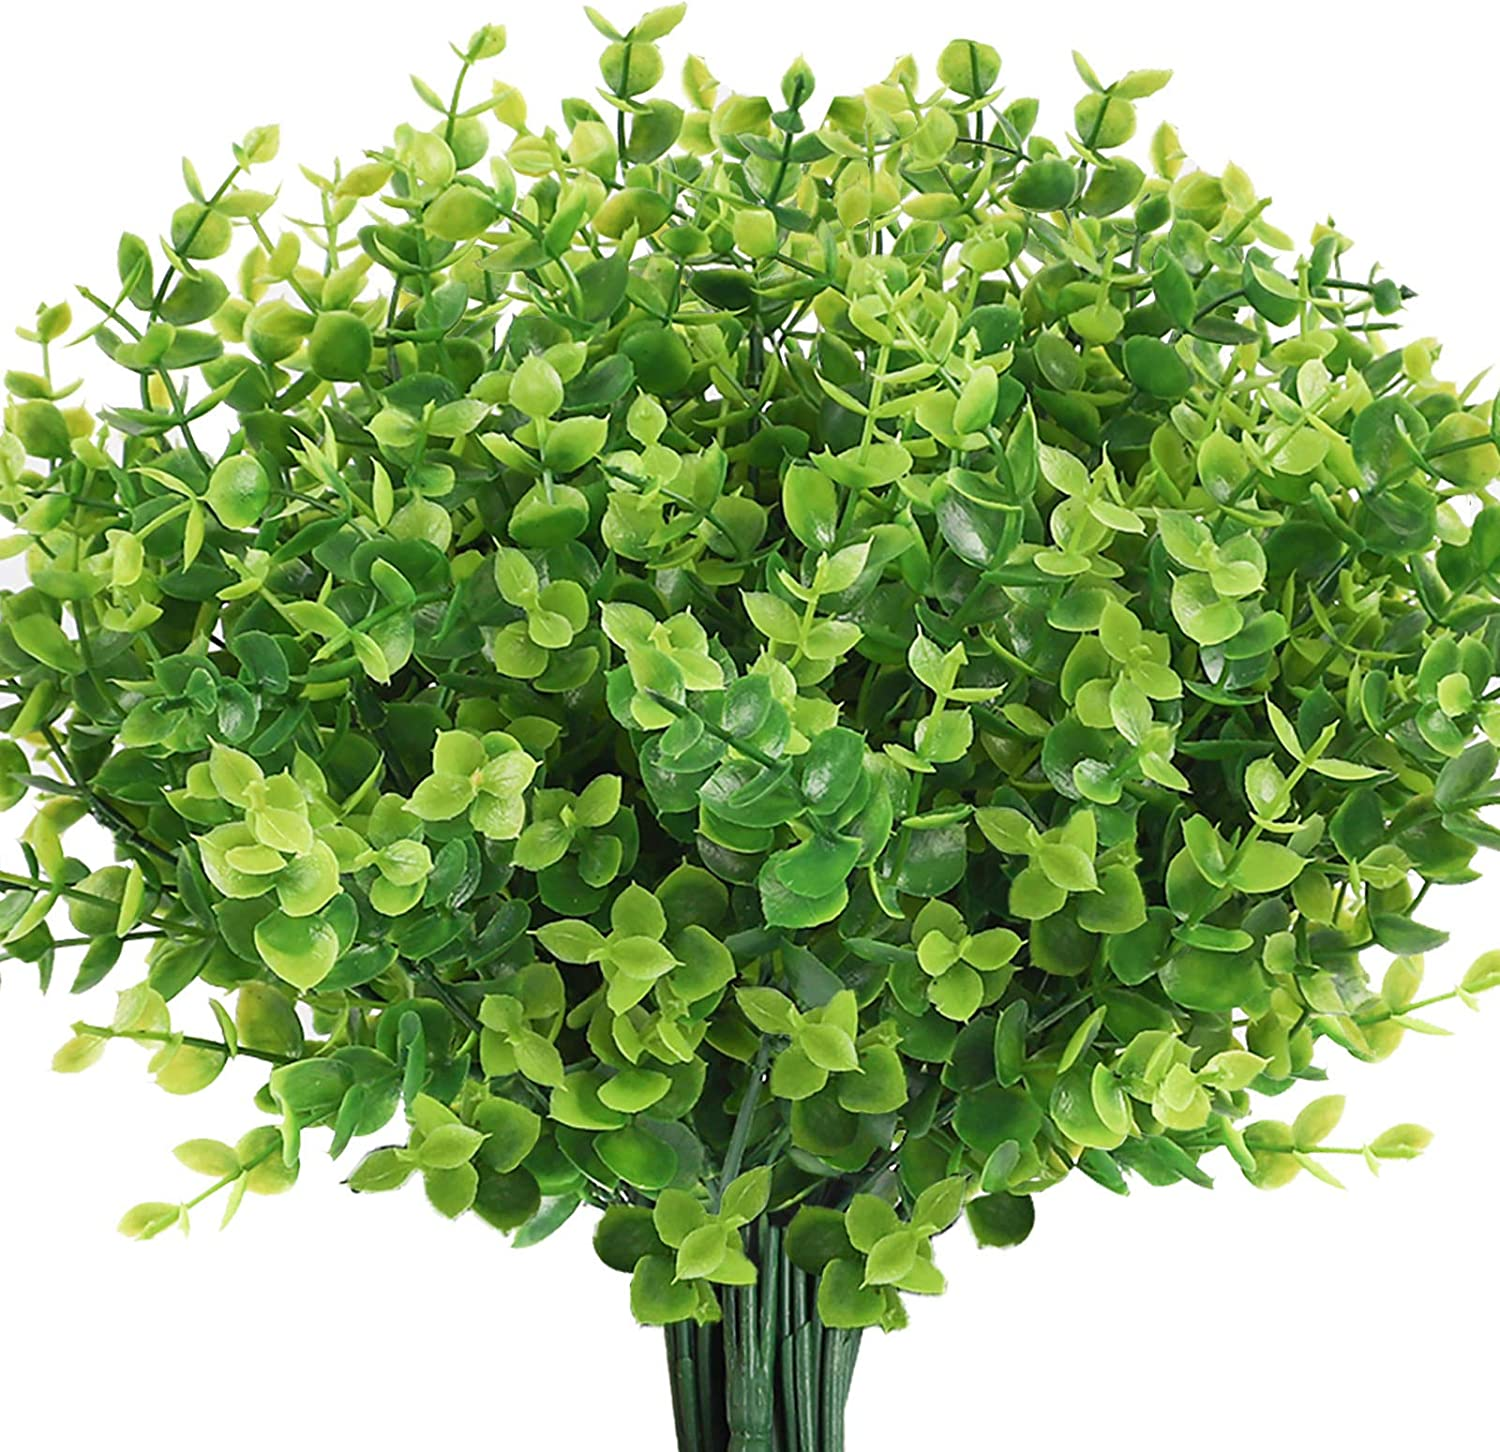 Teldrassil 8-Bunches Artificial Boxwood Stems Faux Plants Grass UV Resistant Fake Greenery Plastic Shrubs for Indoor Outdoor Window Home Garden Decoration